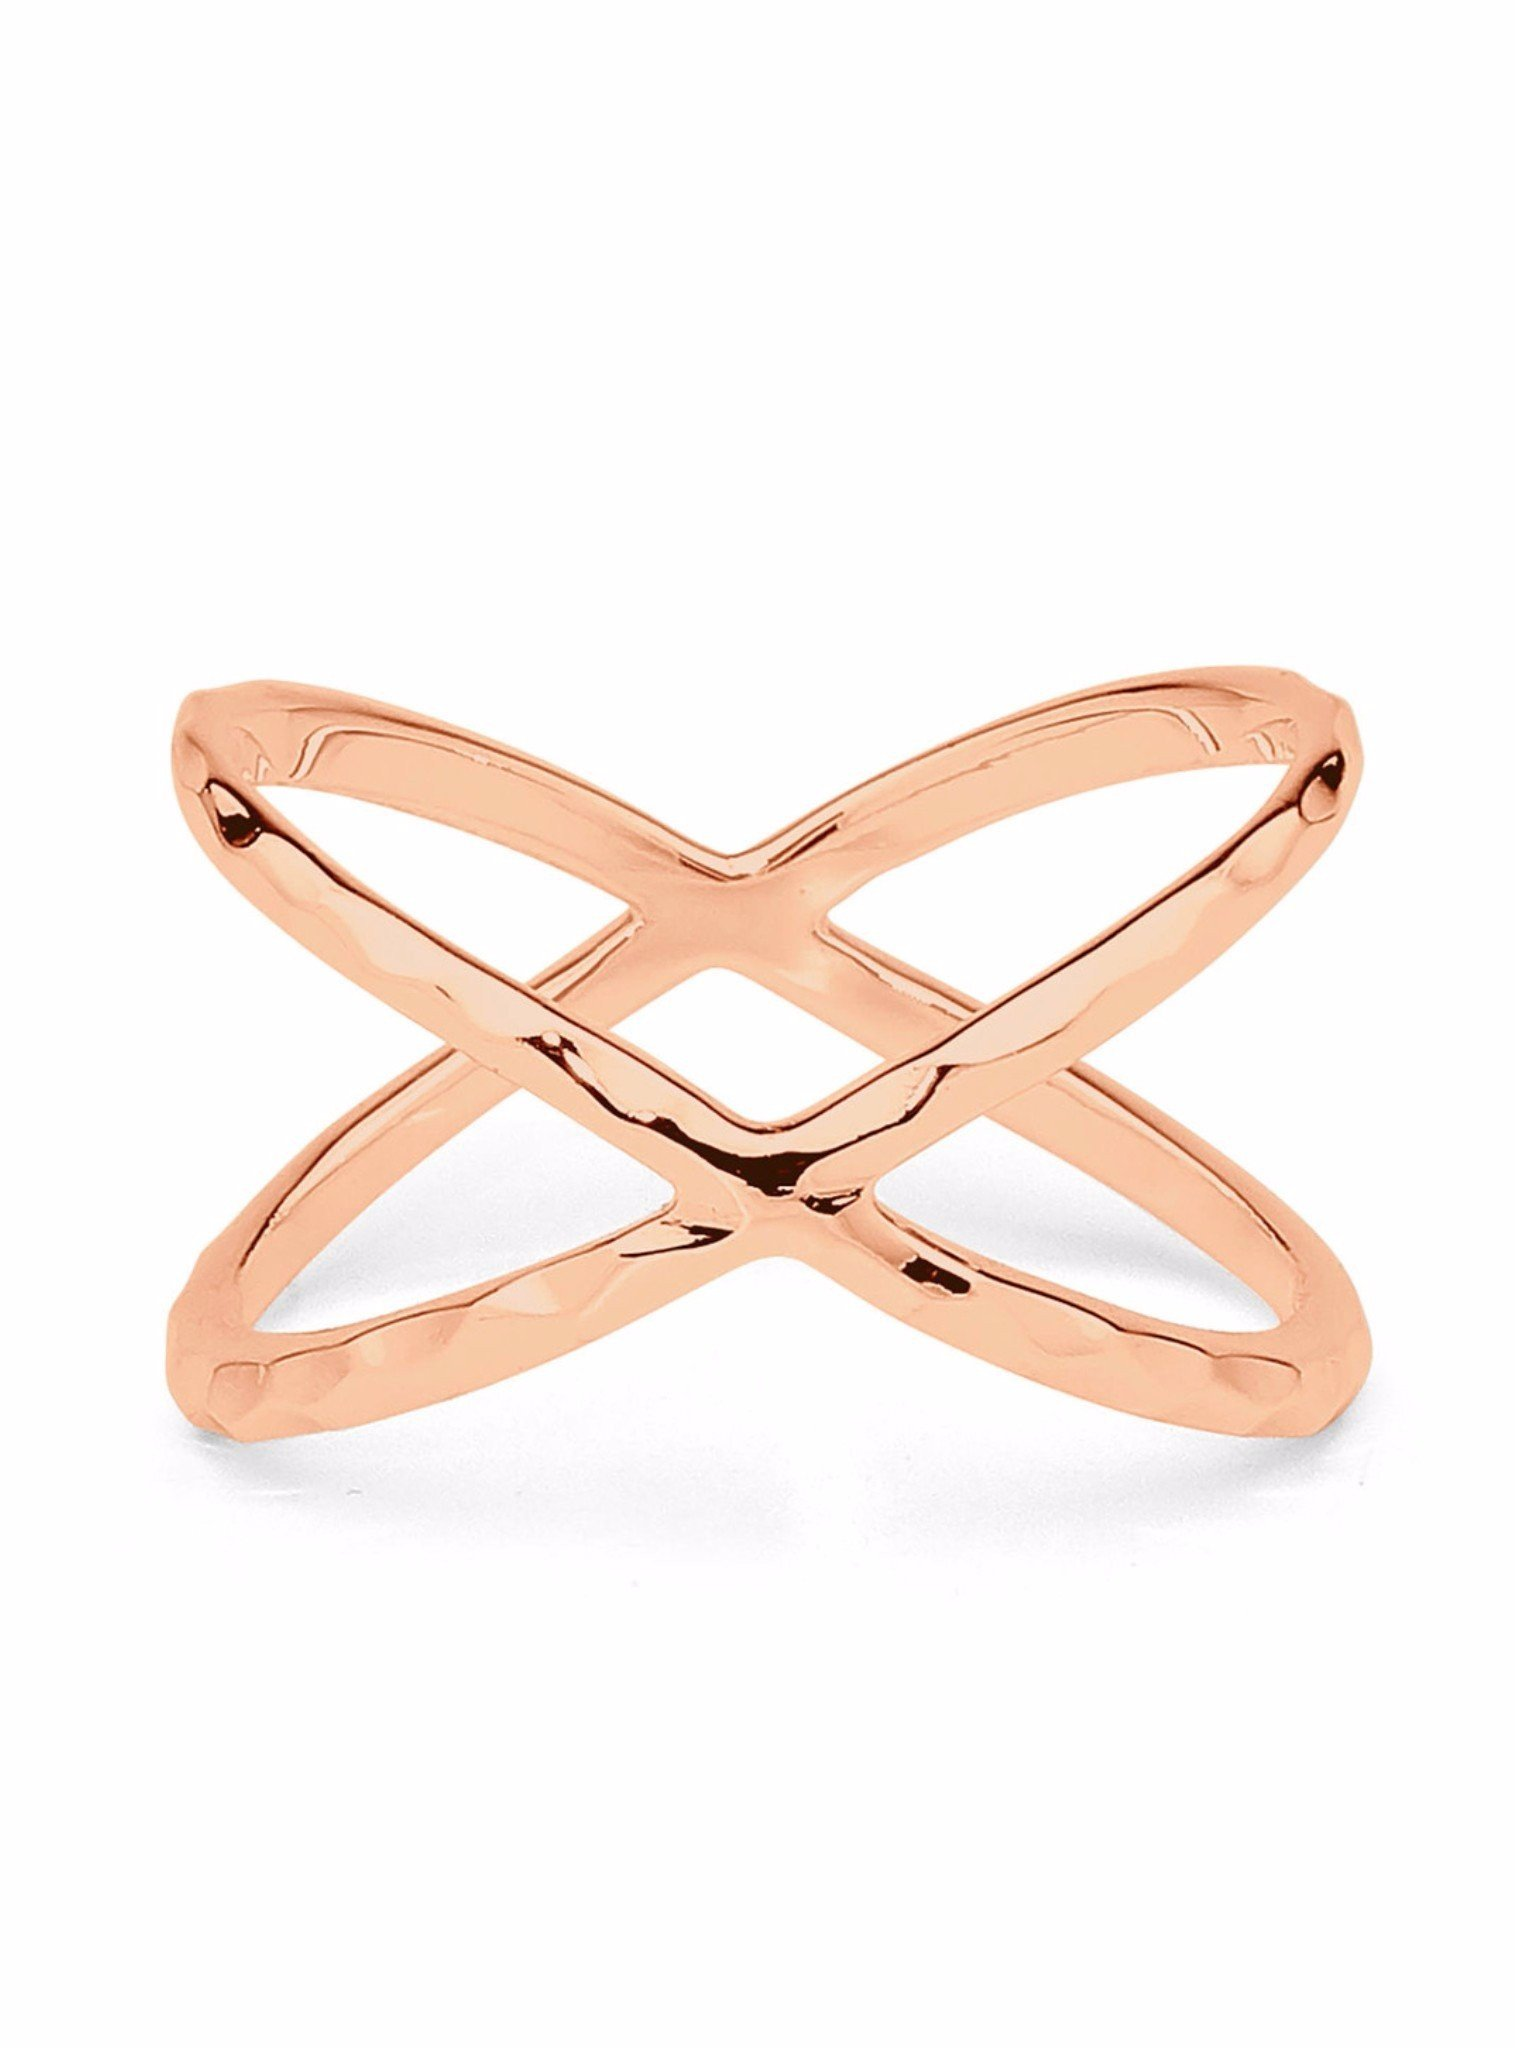 Criss Crossed X Orbital 14k Rose Gold Plated Silver Ring